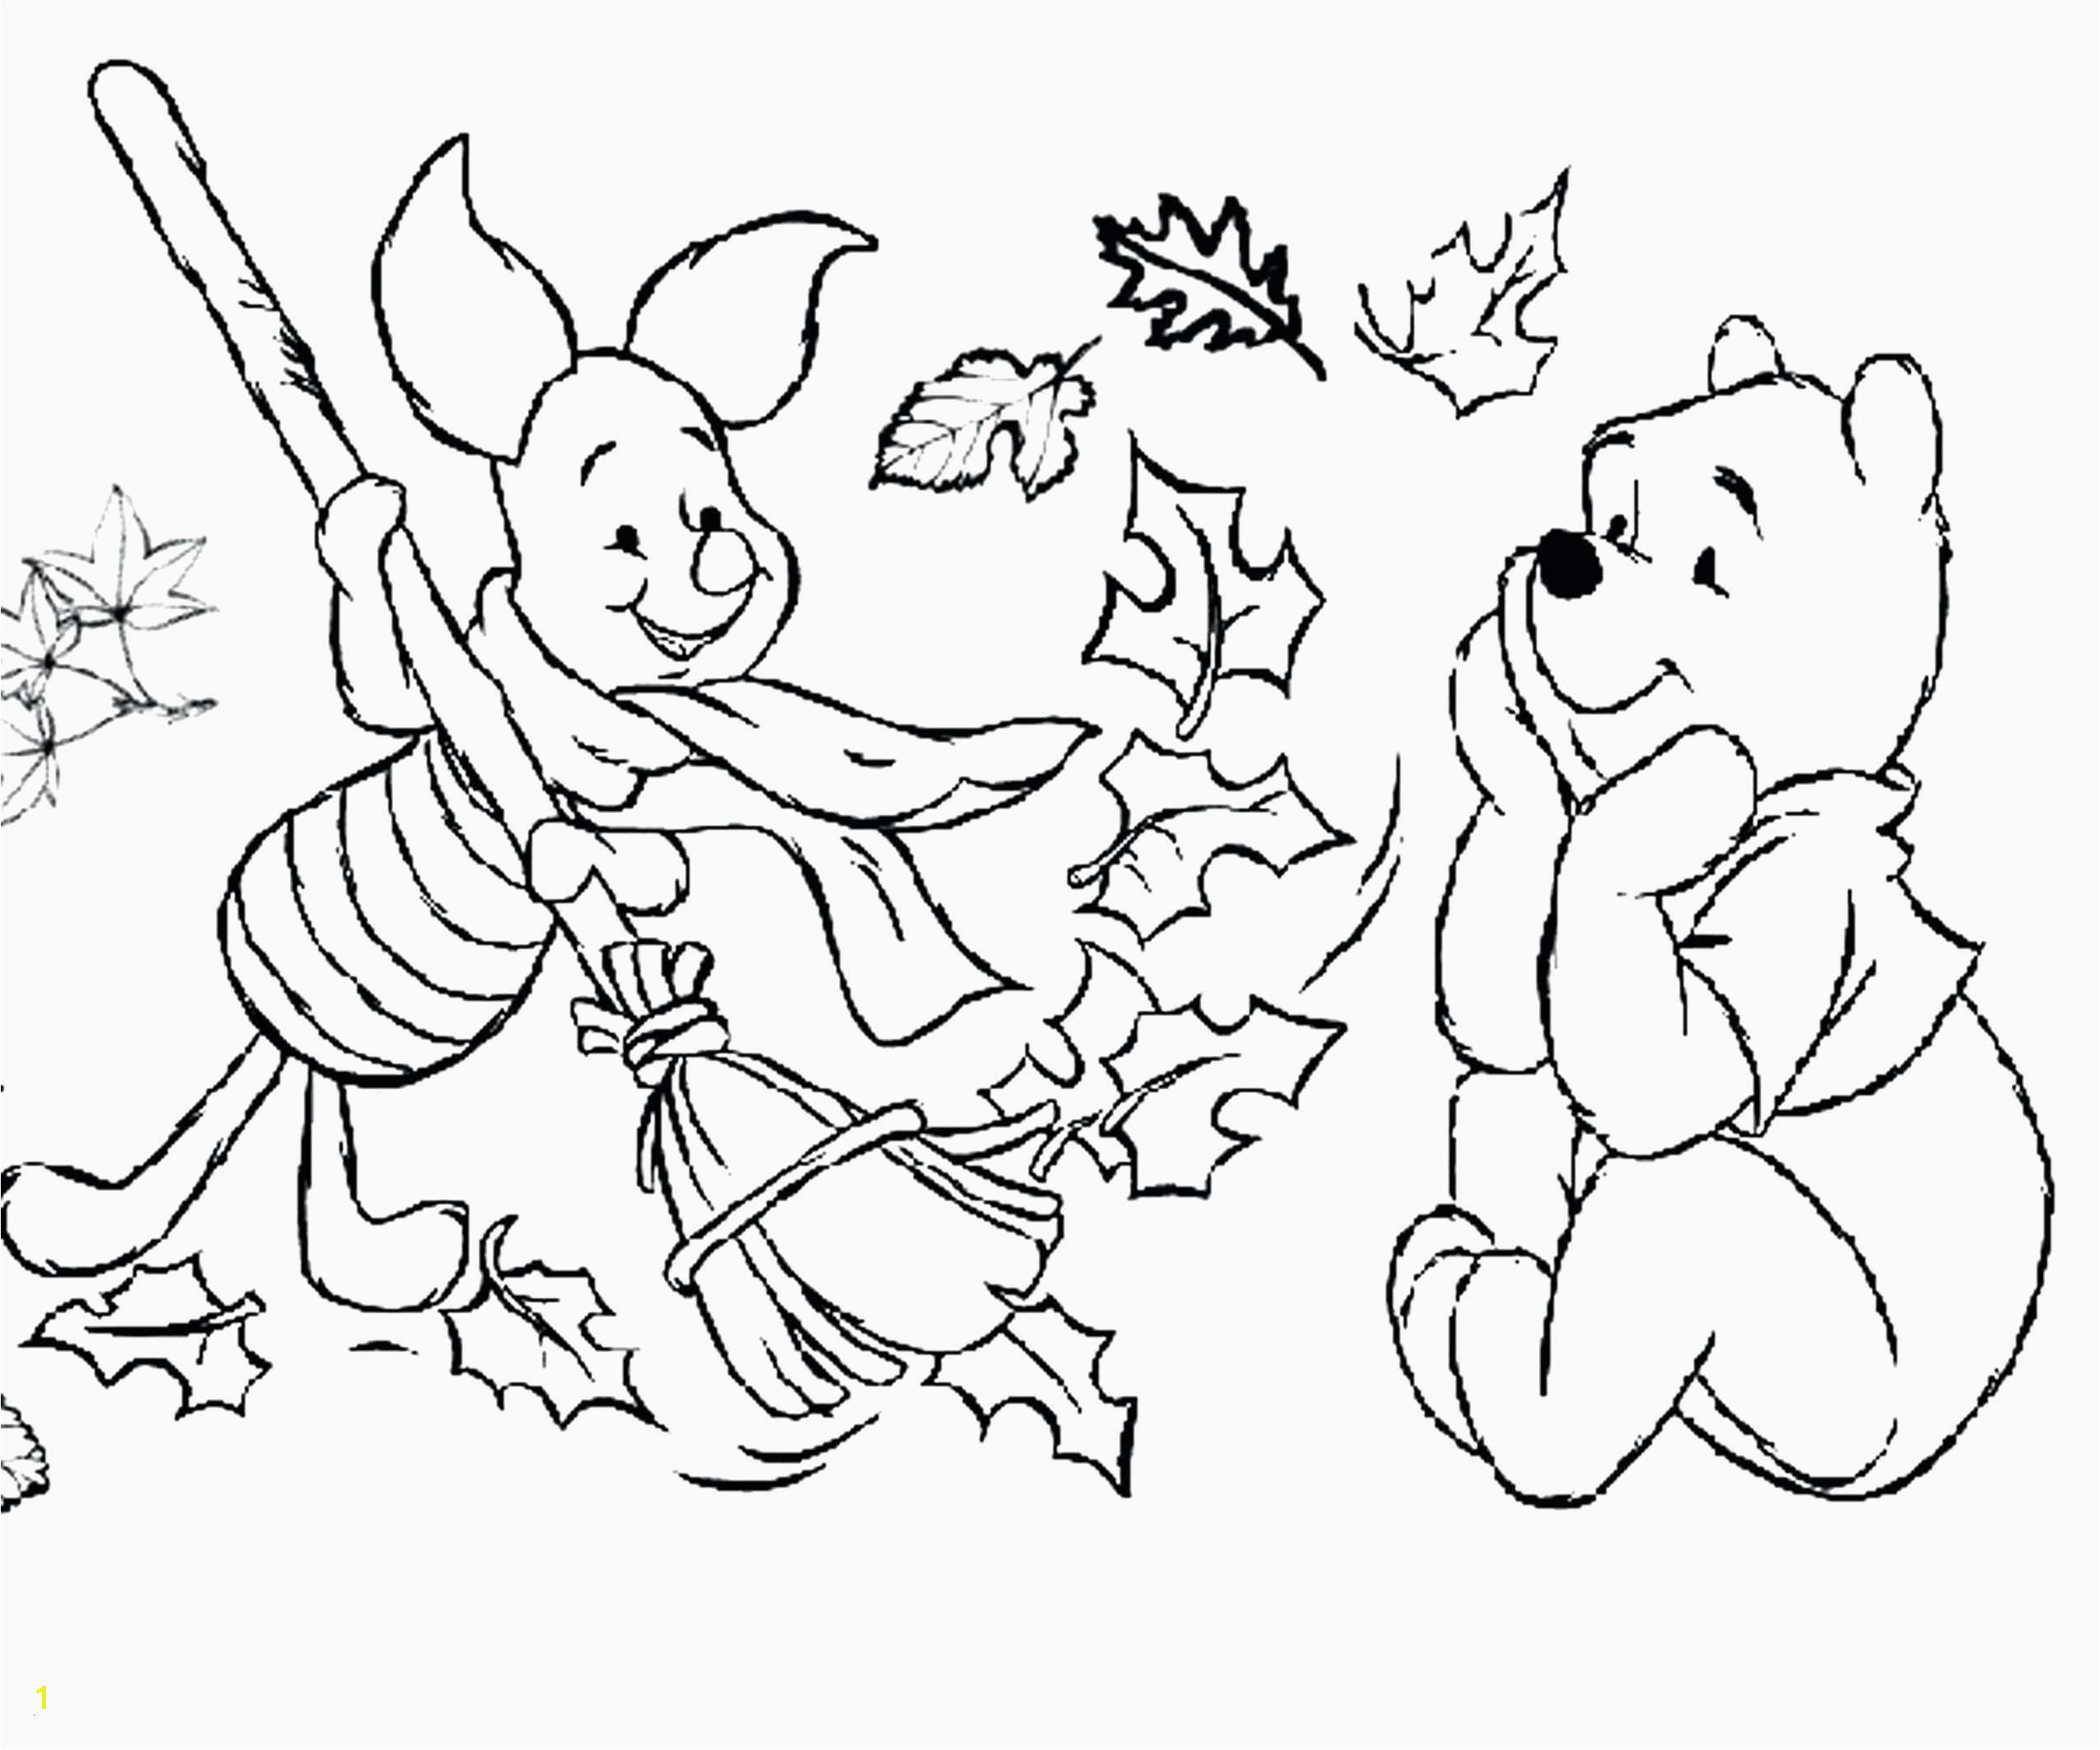 Preschool Christmas ornament Coloring Pages 35 Christmas ornaments Color Pages